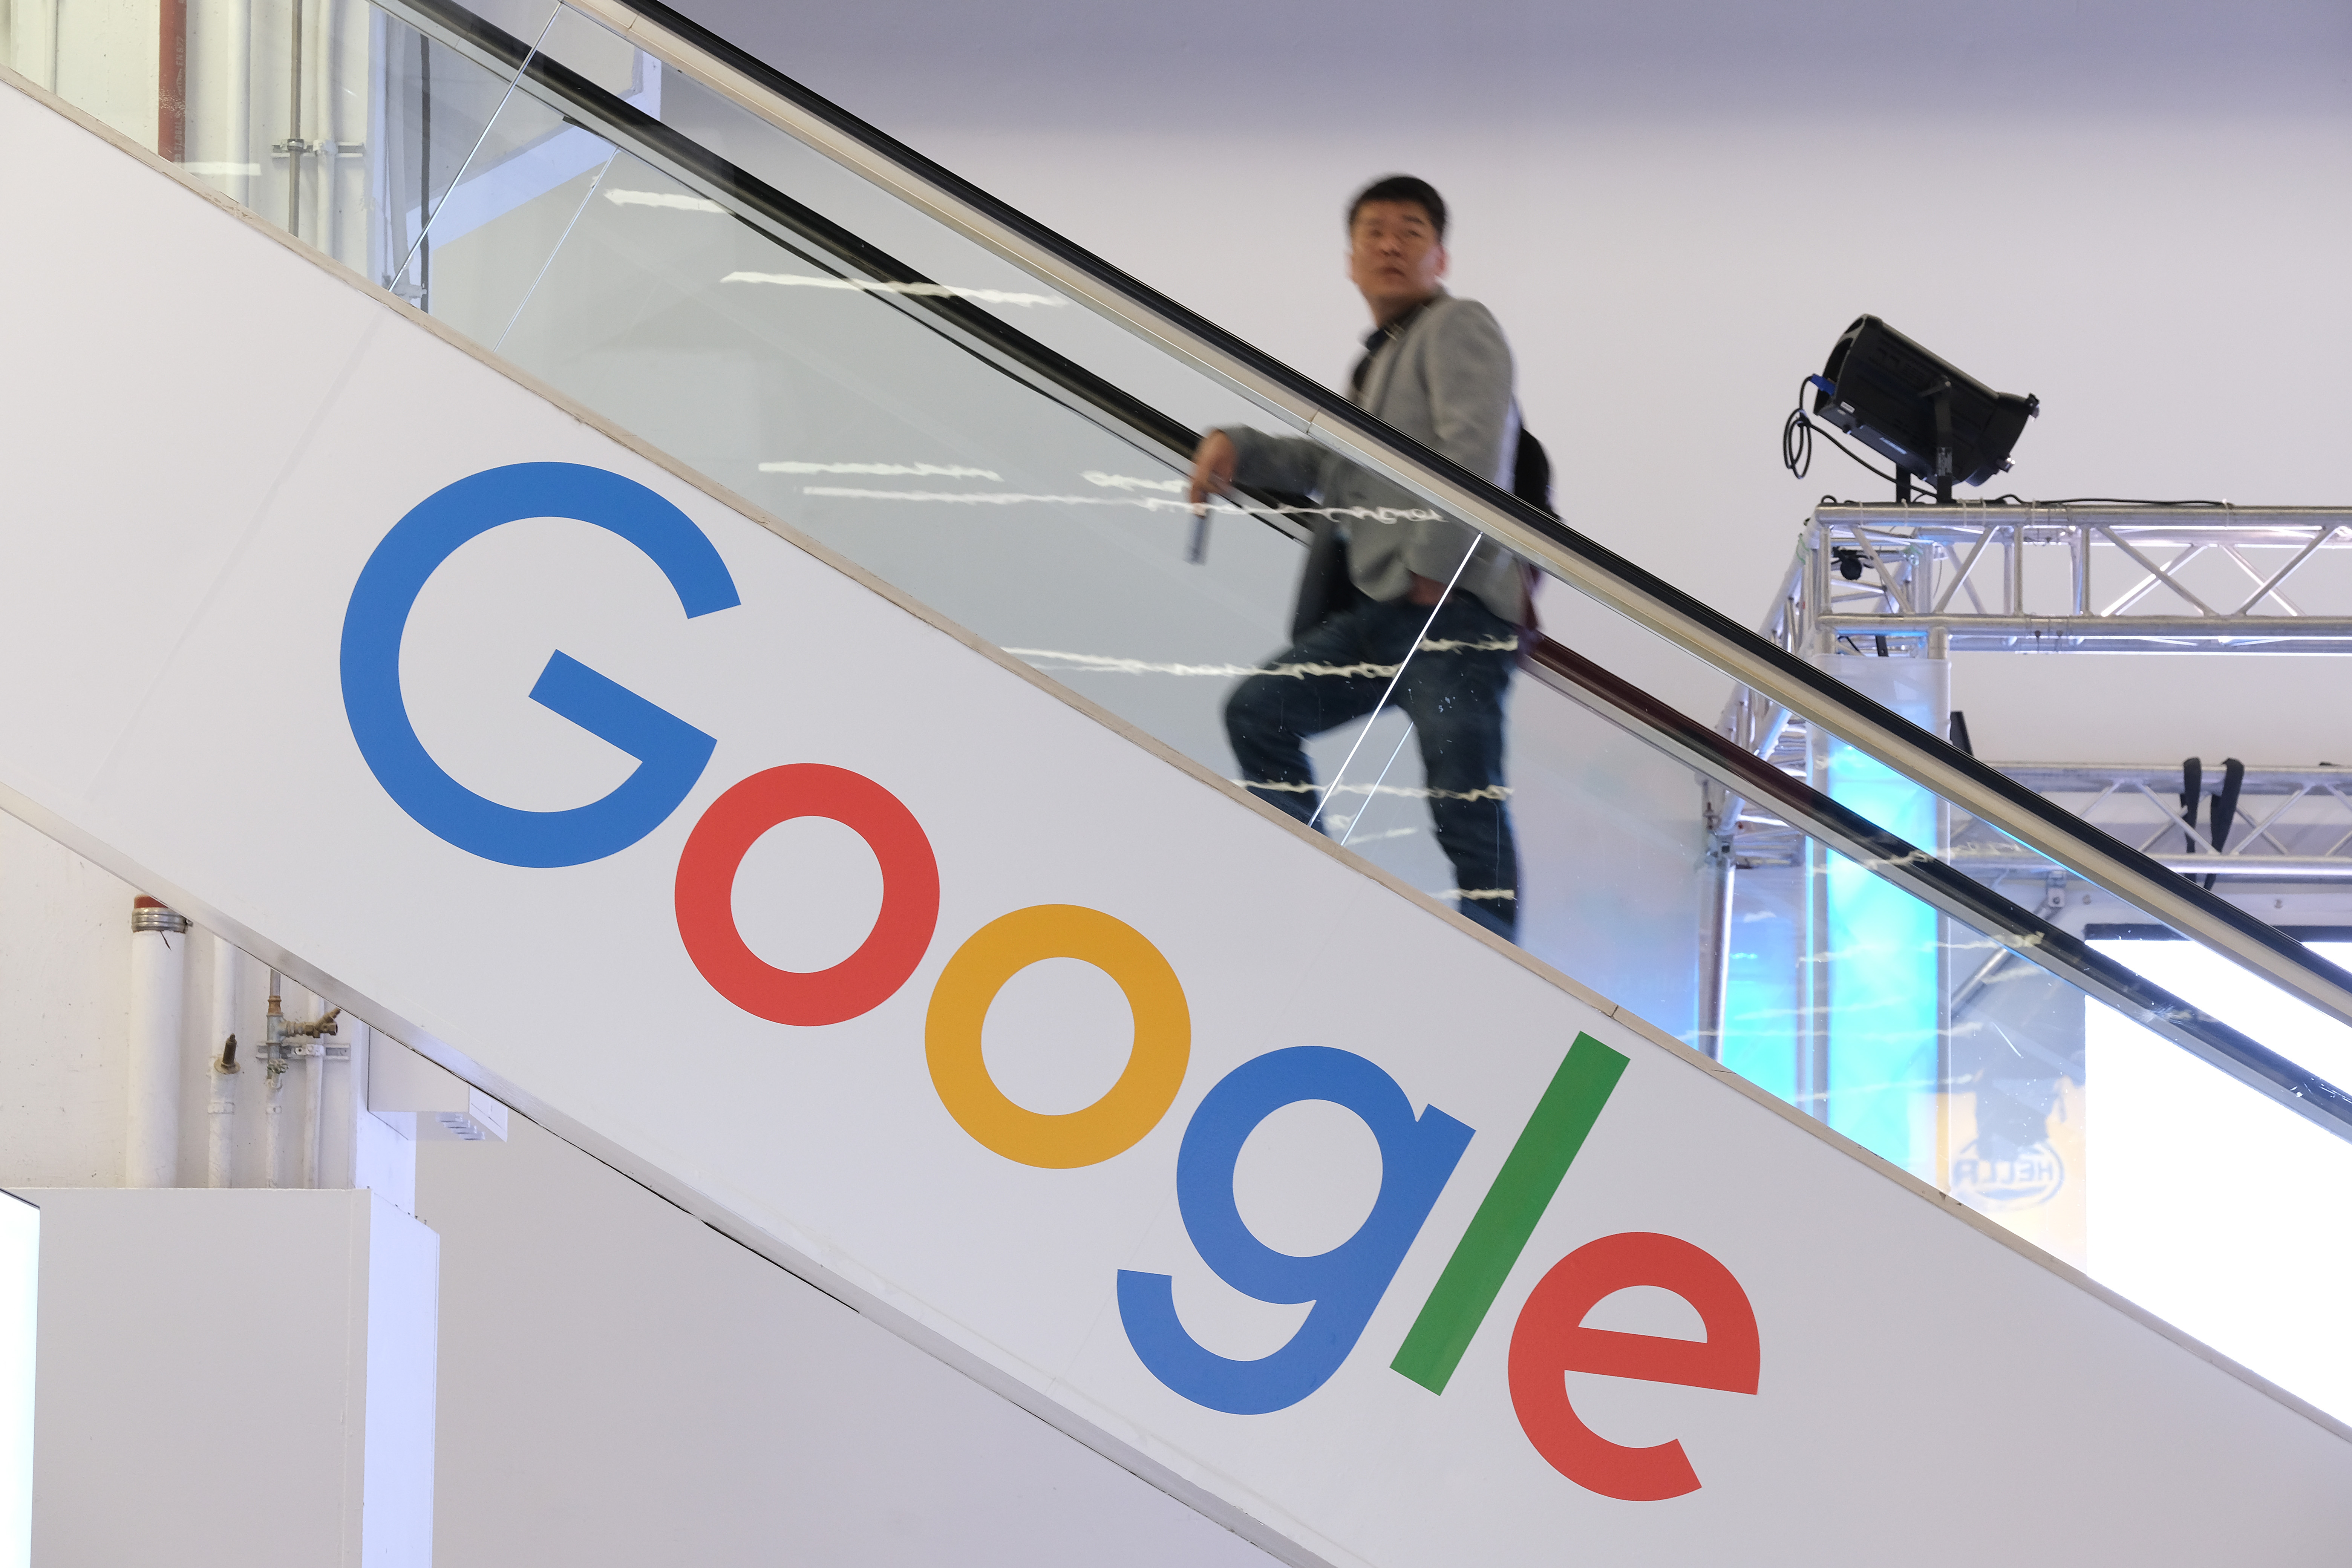 FRANKFURT AM MAIN, GERMANY - SEPTEMBER 11: The Google logo adorns an escalator during the press days at the 2019 IAA Frankfurt Auto Show on September 11, 2019 in Frankfurt am Main, Germany. The IAA will be open to the public from September 12 through 22. (Photo by Sean Gallup/Getty Images)